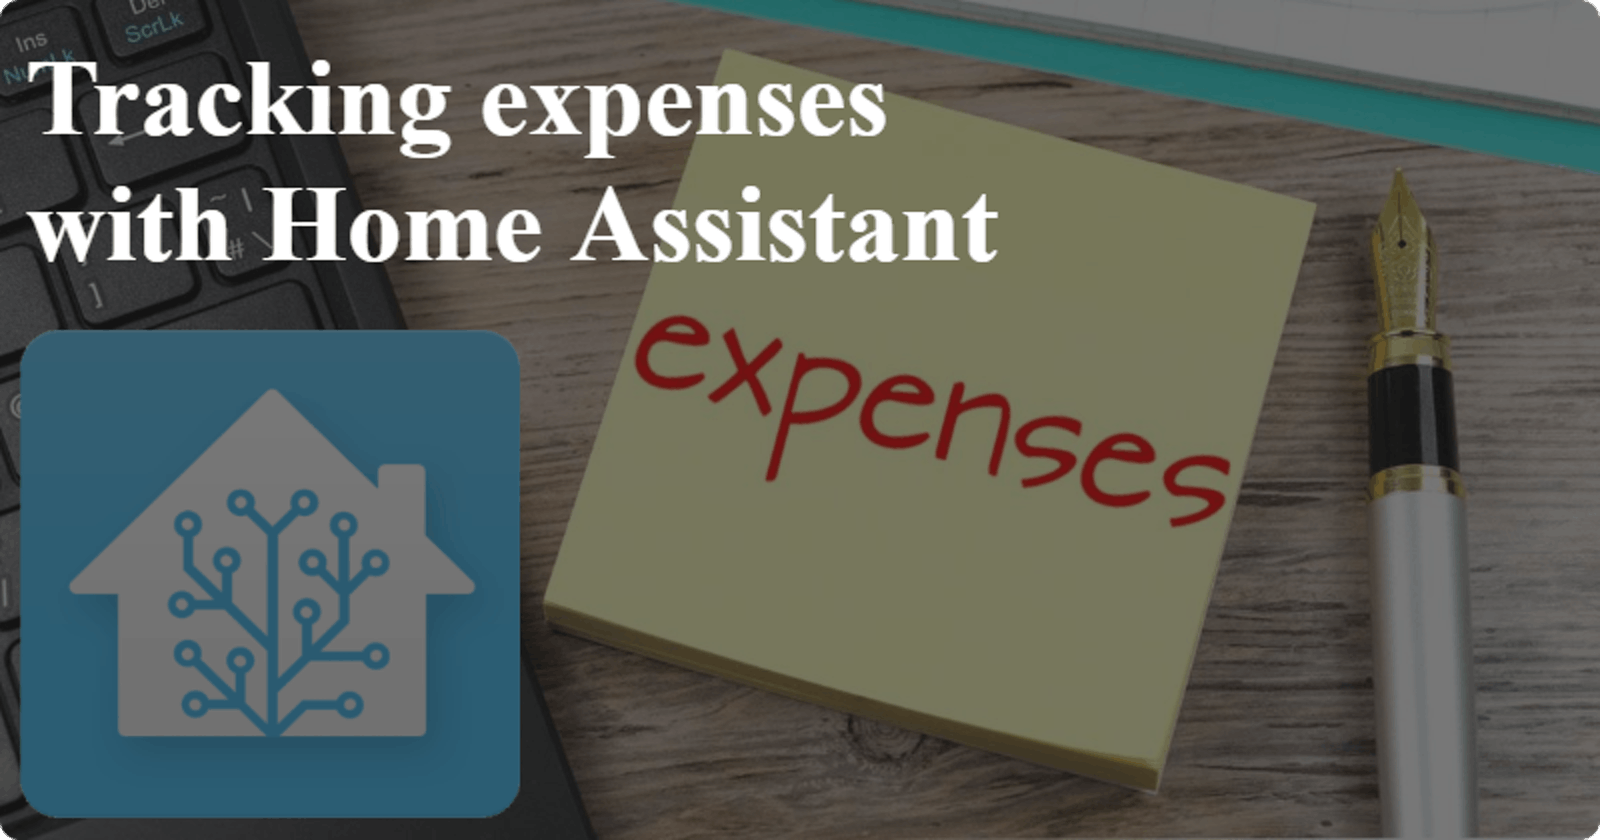 Tracking expenses in Home Assistant